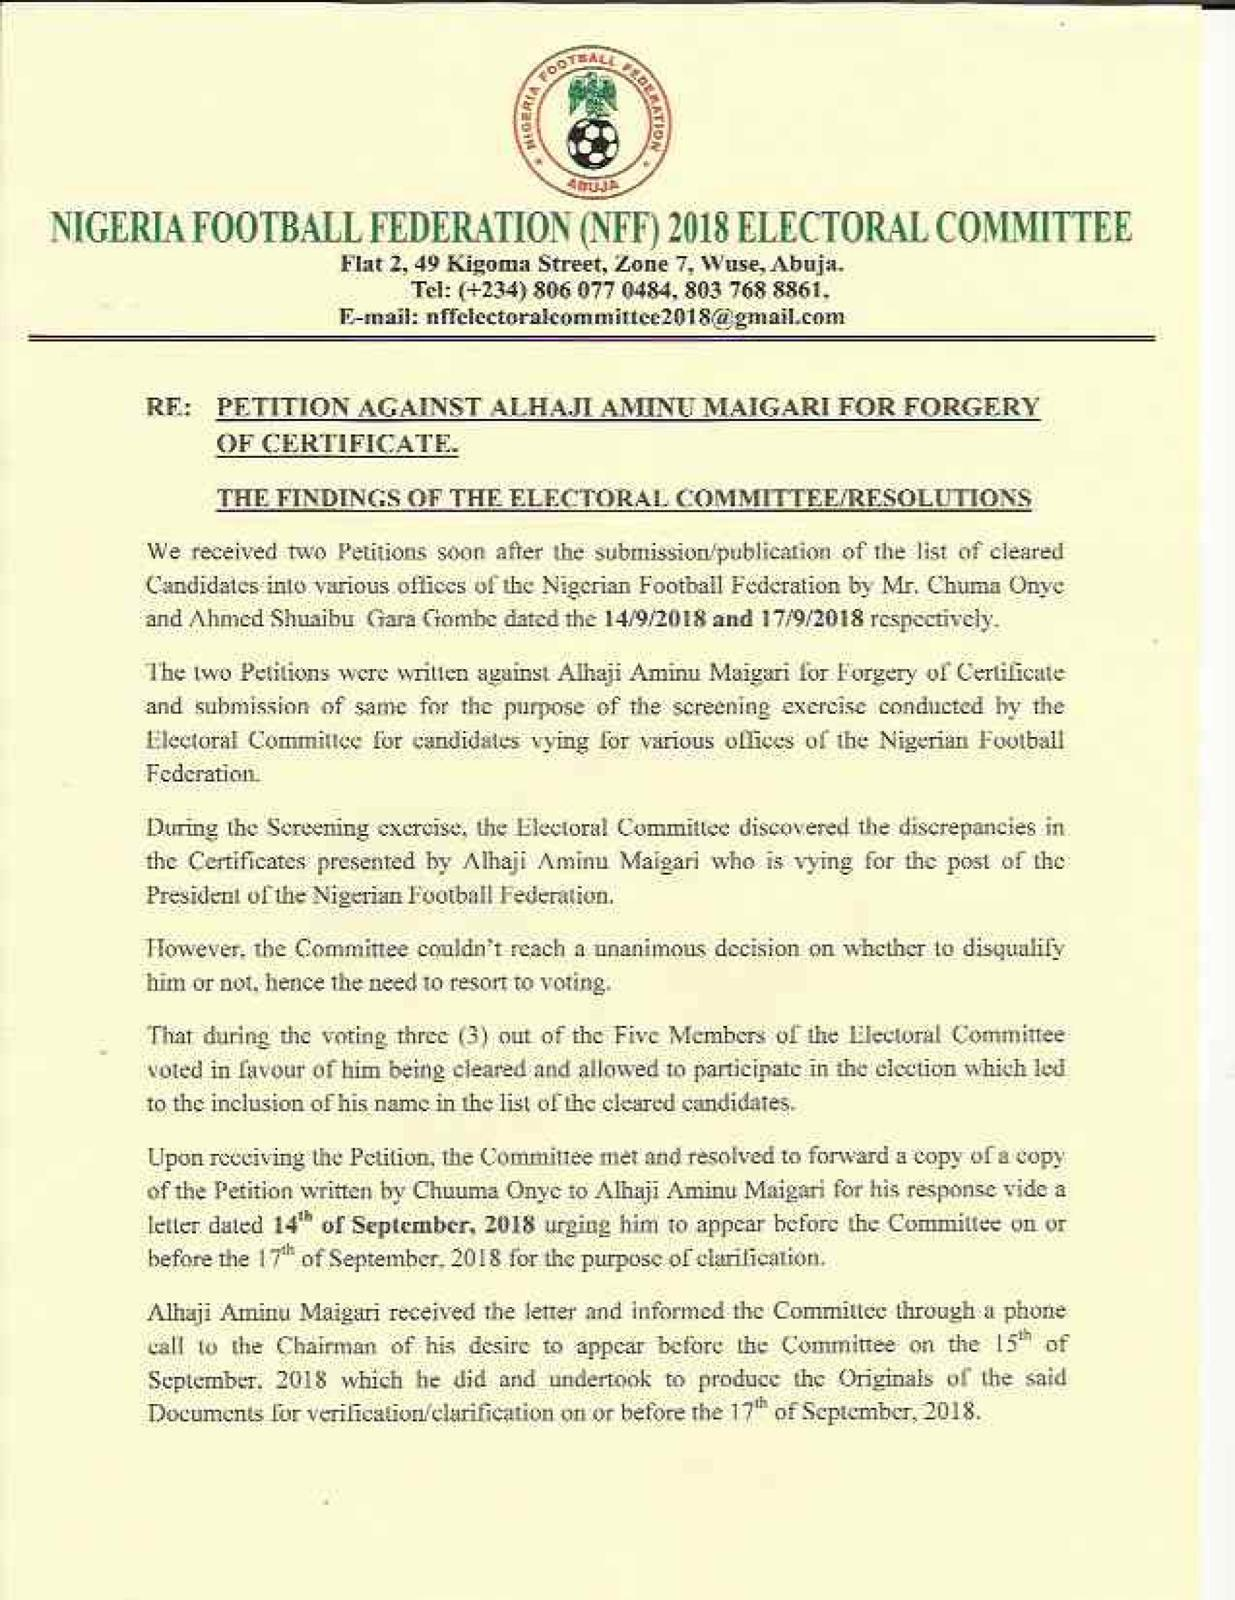 The NFF committee's findings (I)